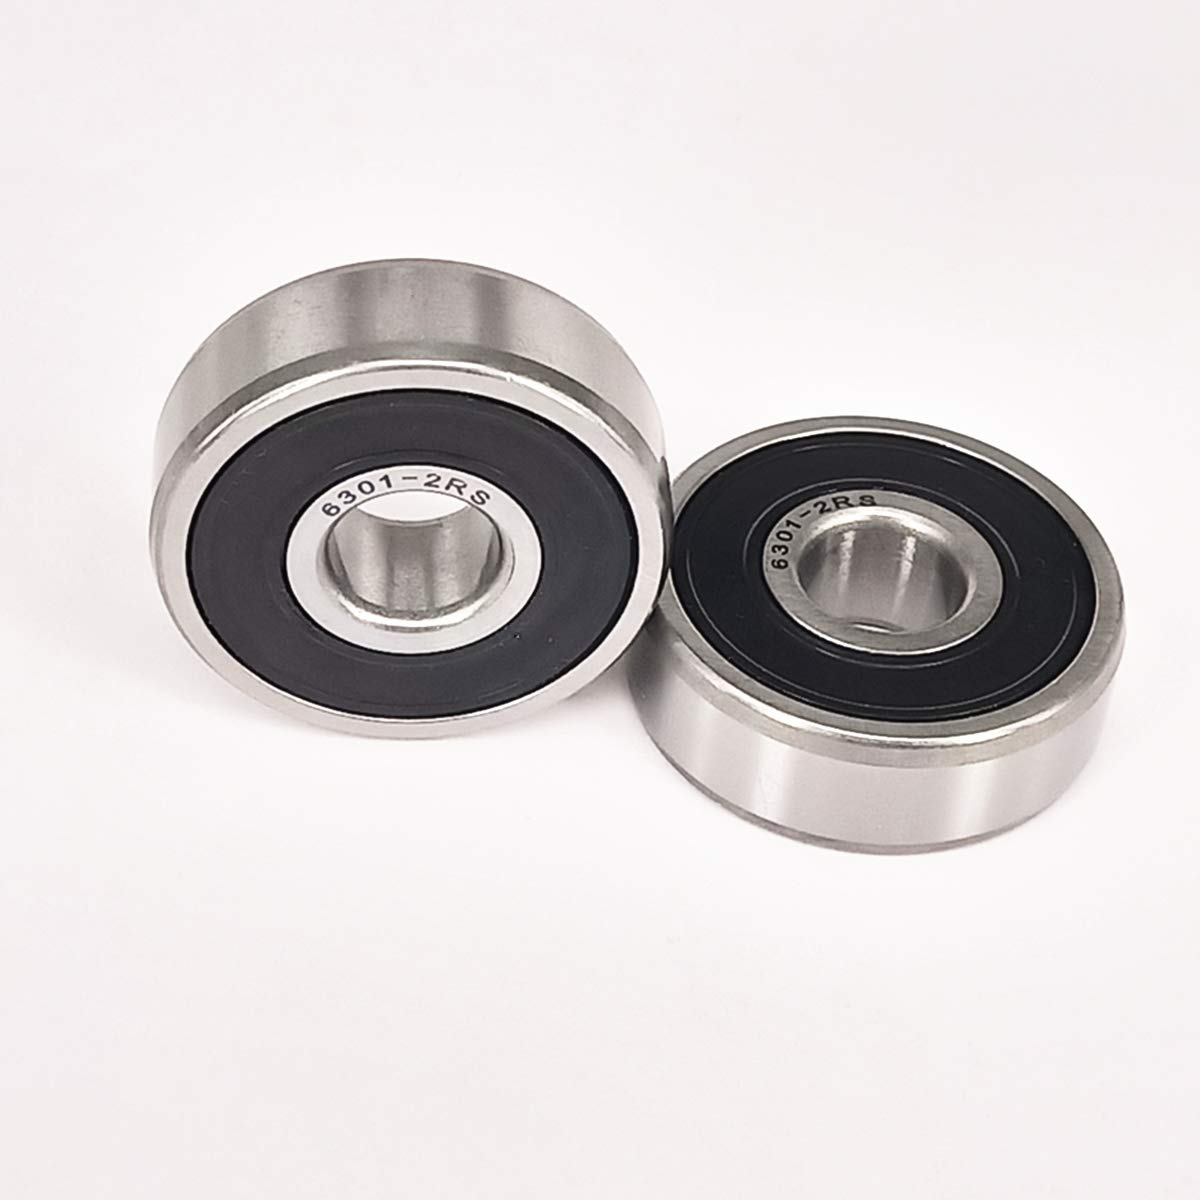 6204-2RS Sealed Radial Ball Bearing 20X47X14 10 pack